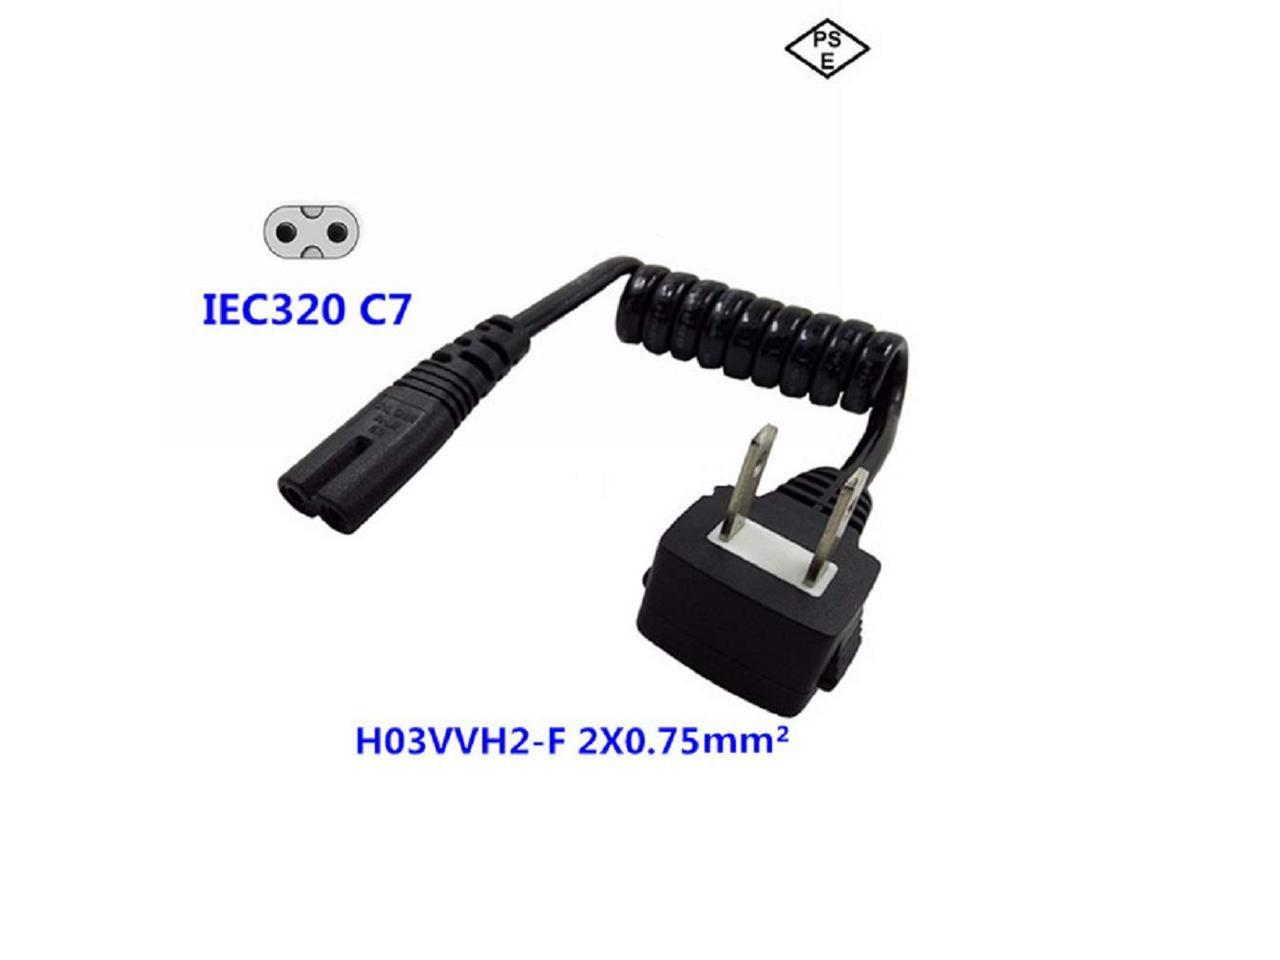 LED HDTV - NEMA 1-15P to IEC320 C7 Figure 8 Shotgun Connector AC Supply Cable Wire Socket Plug Jack Compatible with Apple TV Black TNP Universal 2 Prong Power Cord PS3 Slim 1 Feet PS4